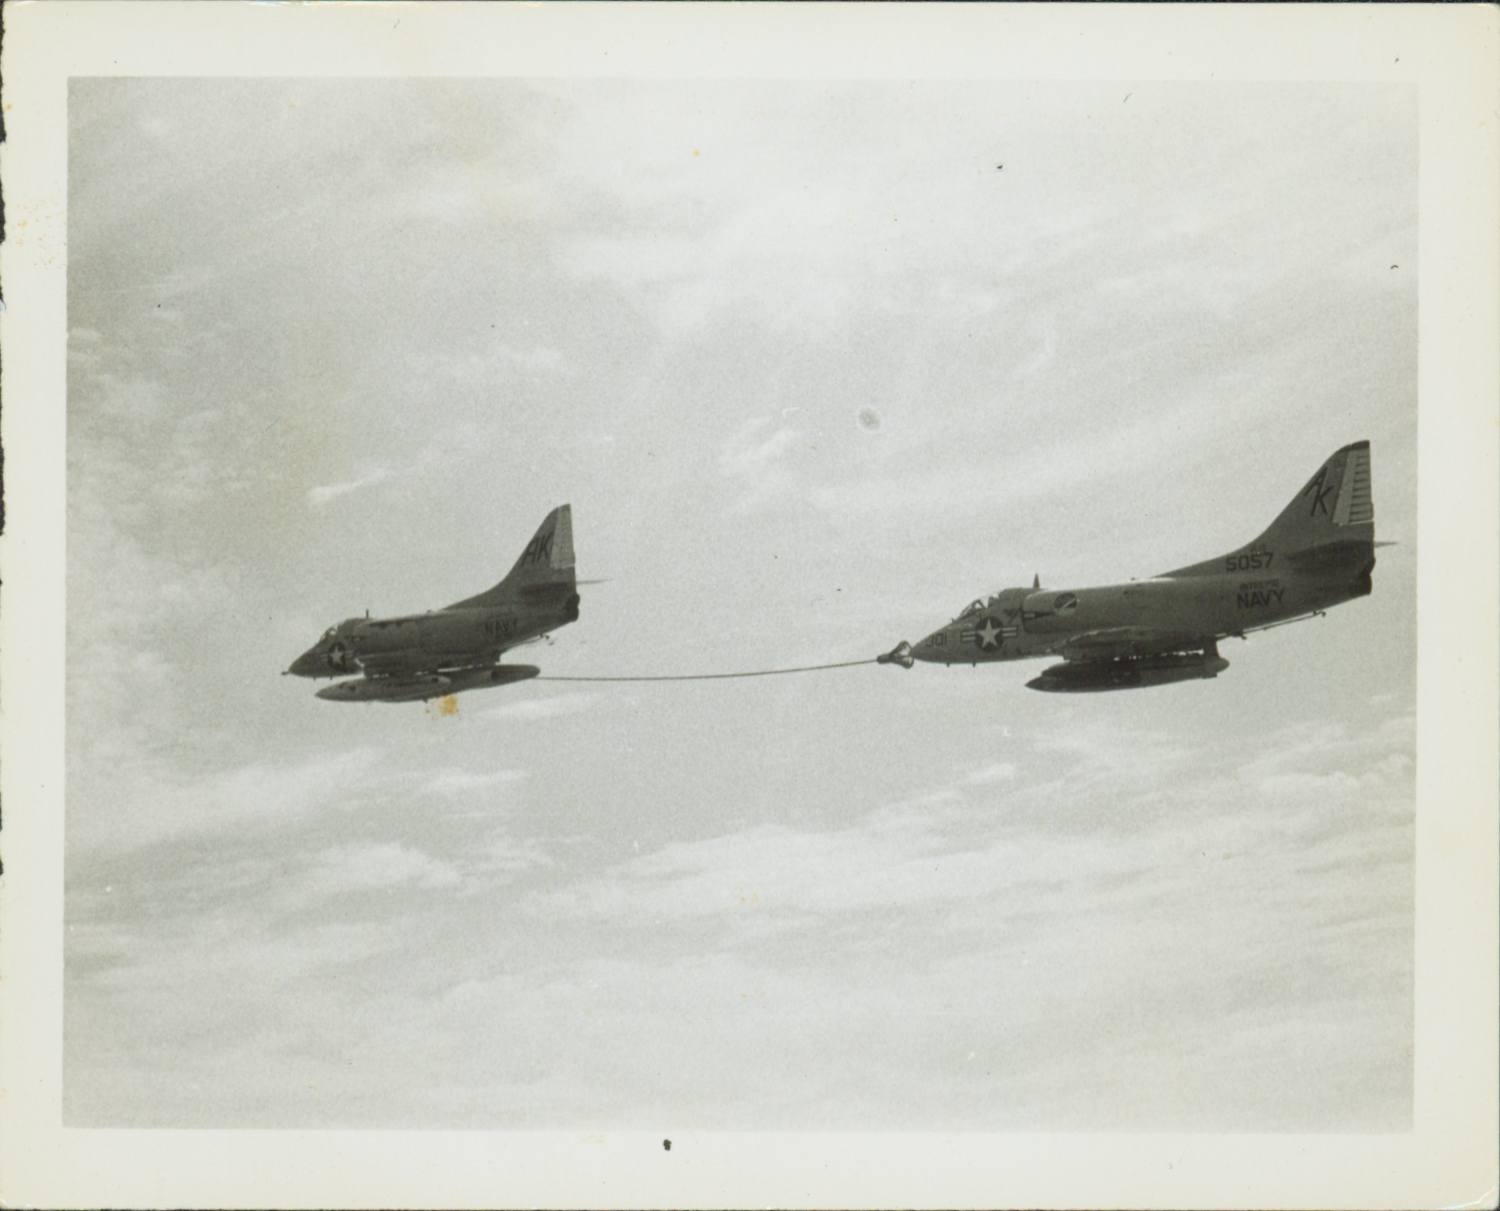 A photo of the side view of two flying jet planes connected by a fuel line from the back of one plane to the front of the other.